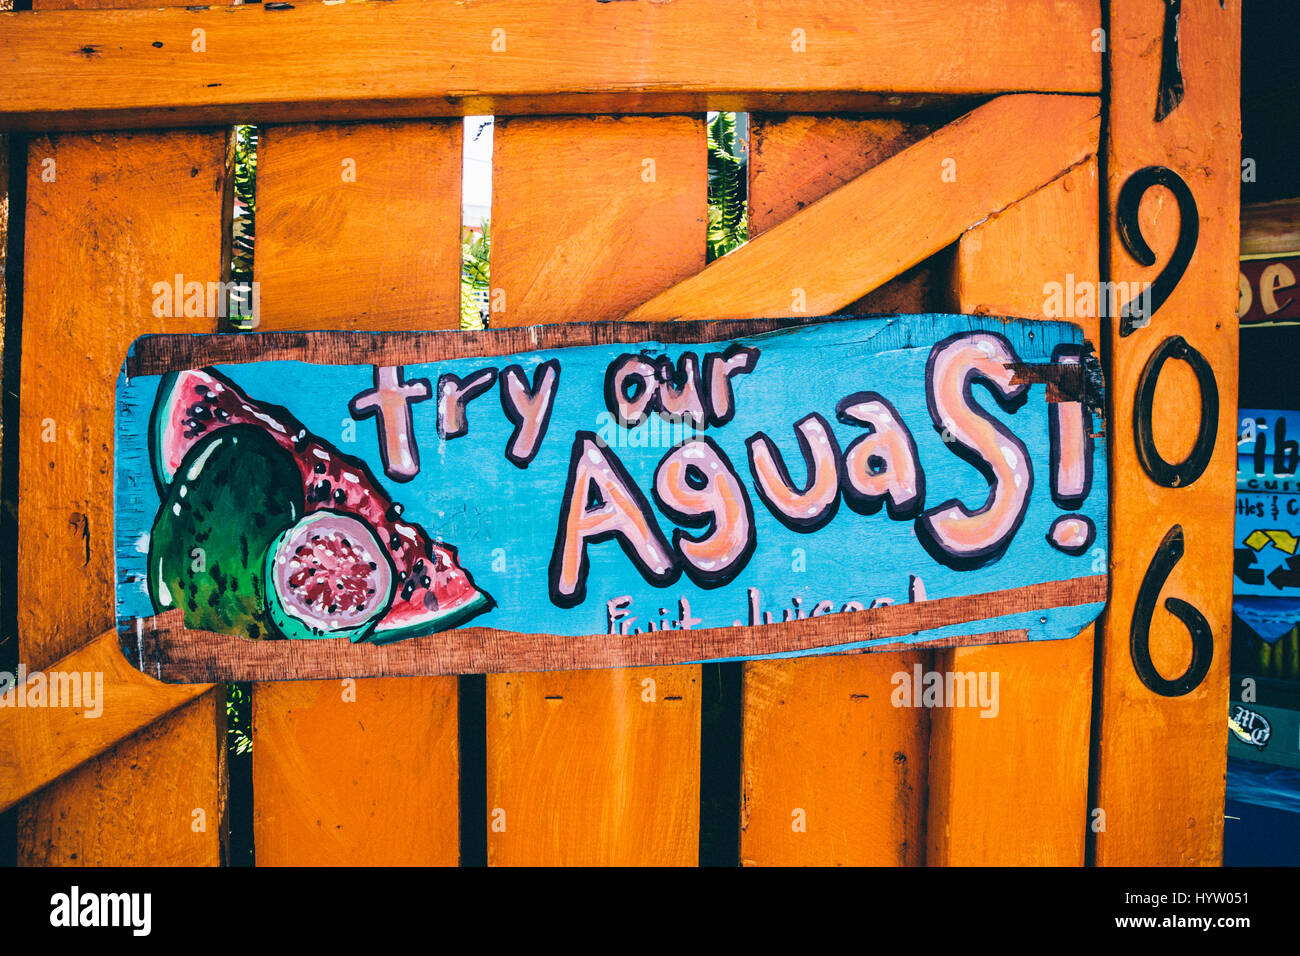 Try Our Aguas! Sign in Los Angeles, CA, USA - Stock Image